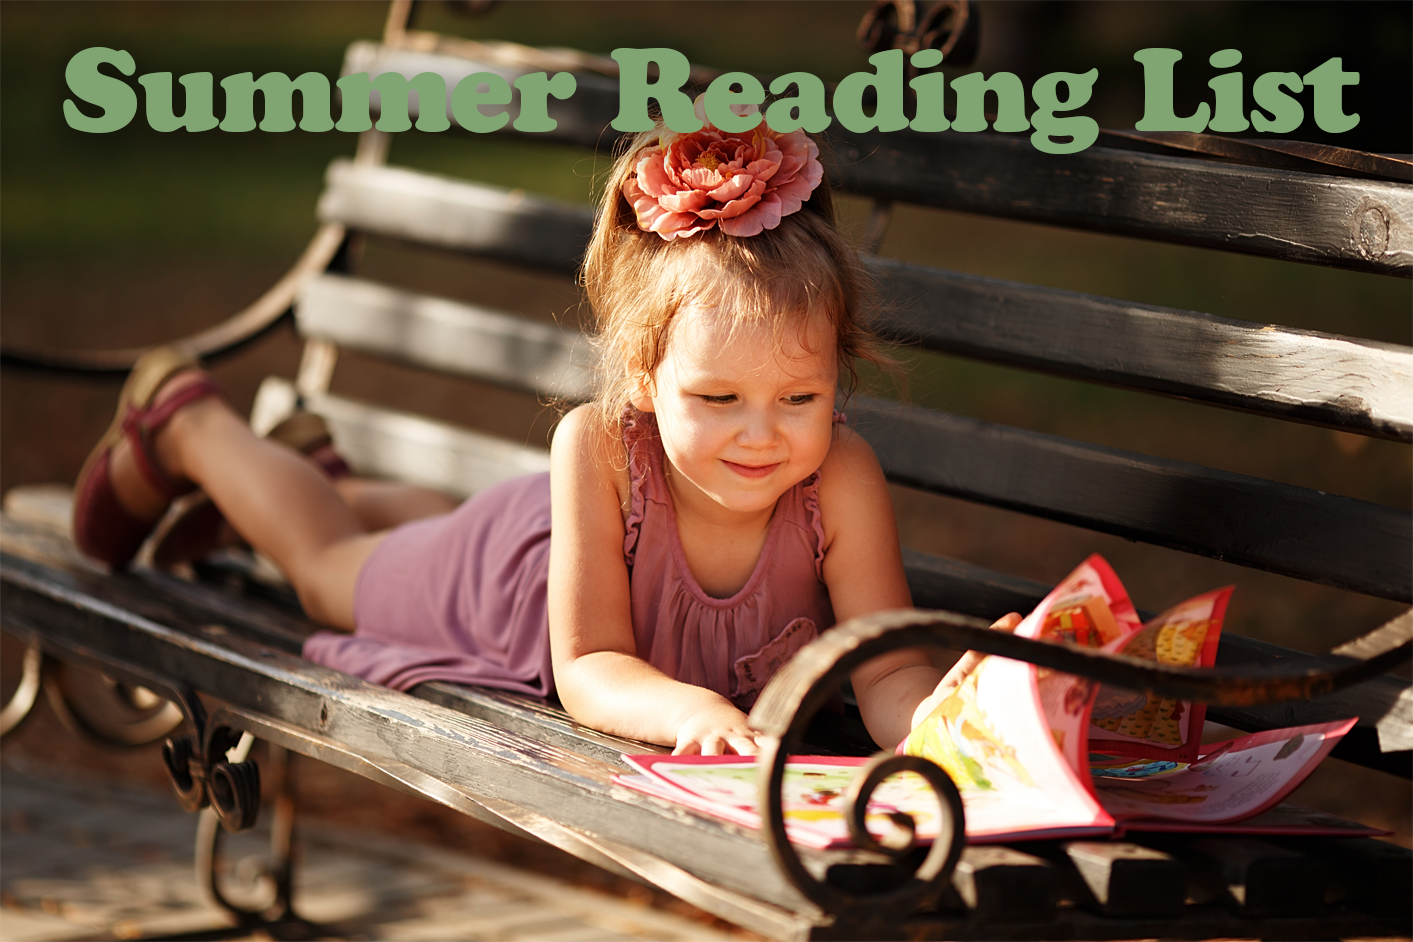 Put These Books on Your Child's Summer Reading List